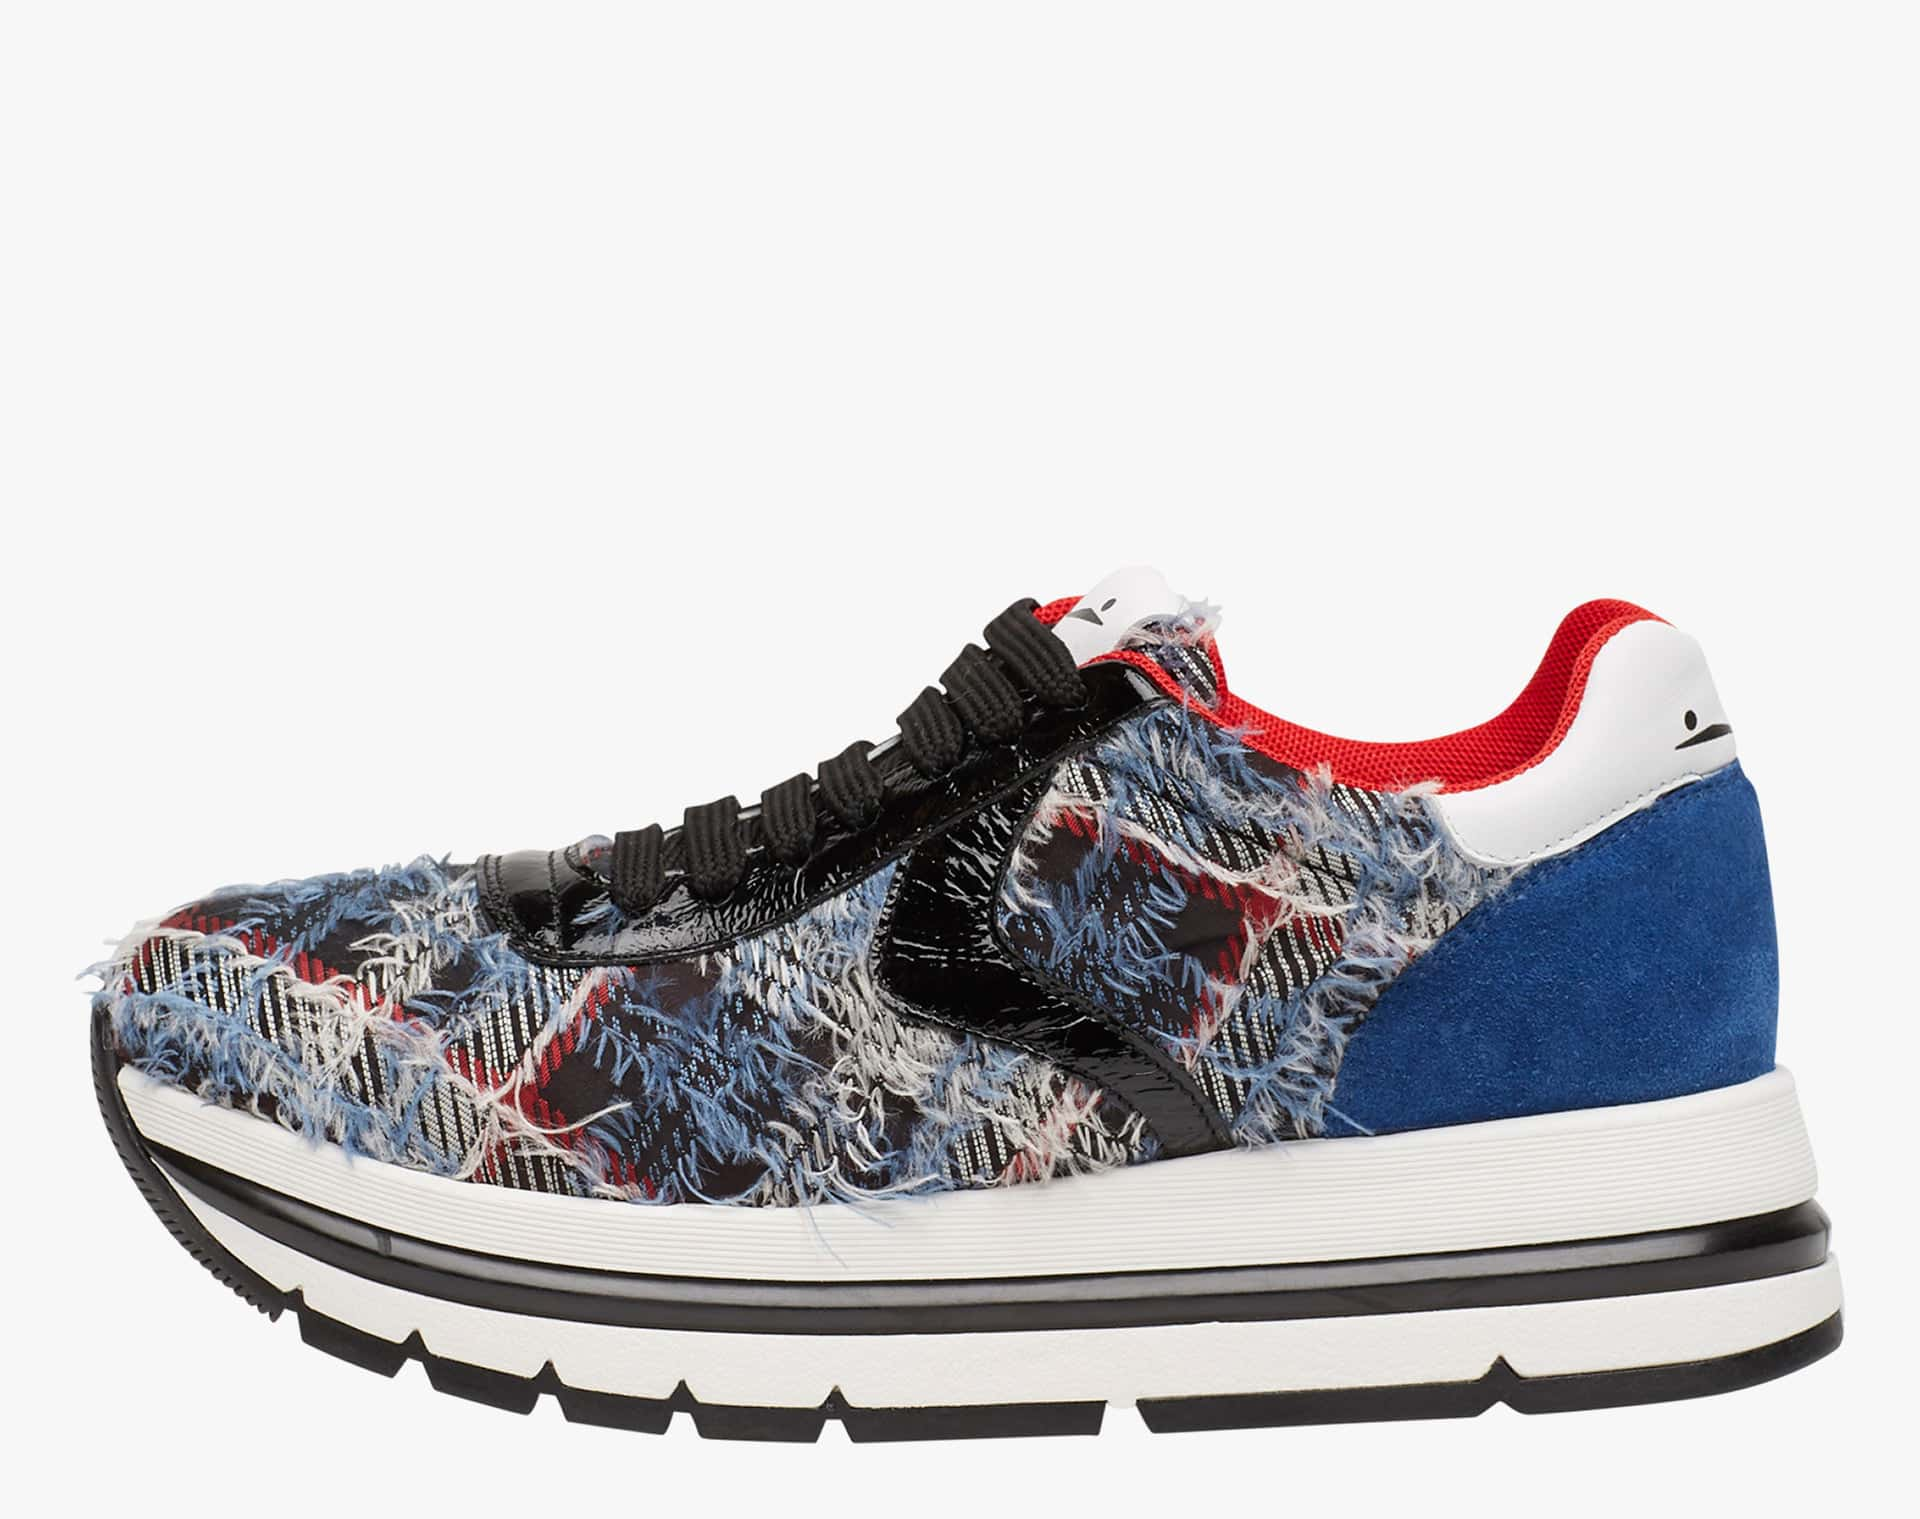 APRILLE EASY - Sneakers in leather and nylon - Light Blue-White-Cornflower Blue